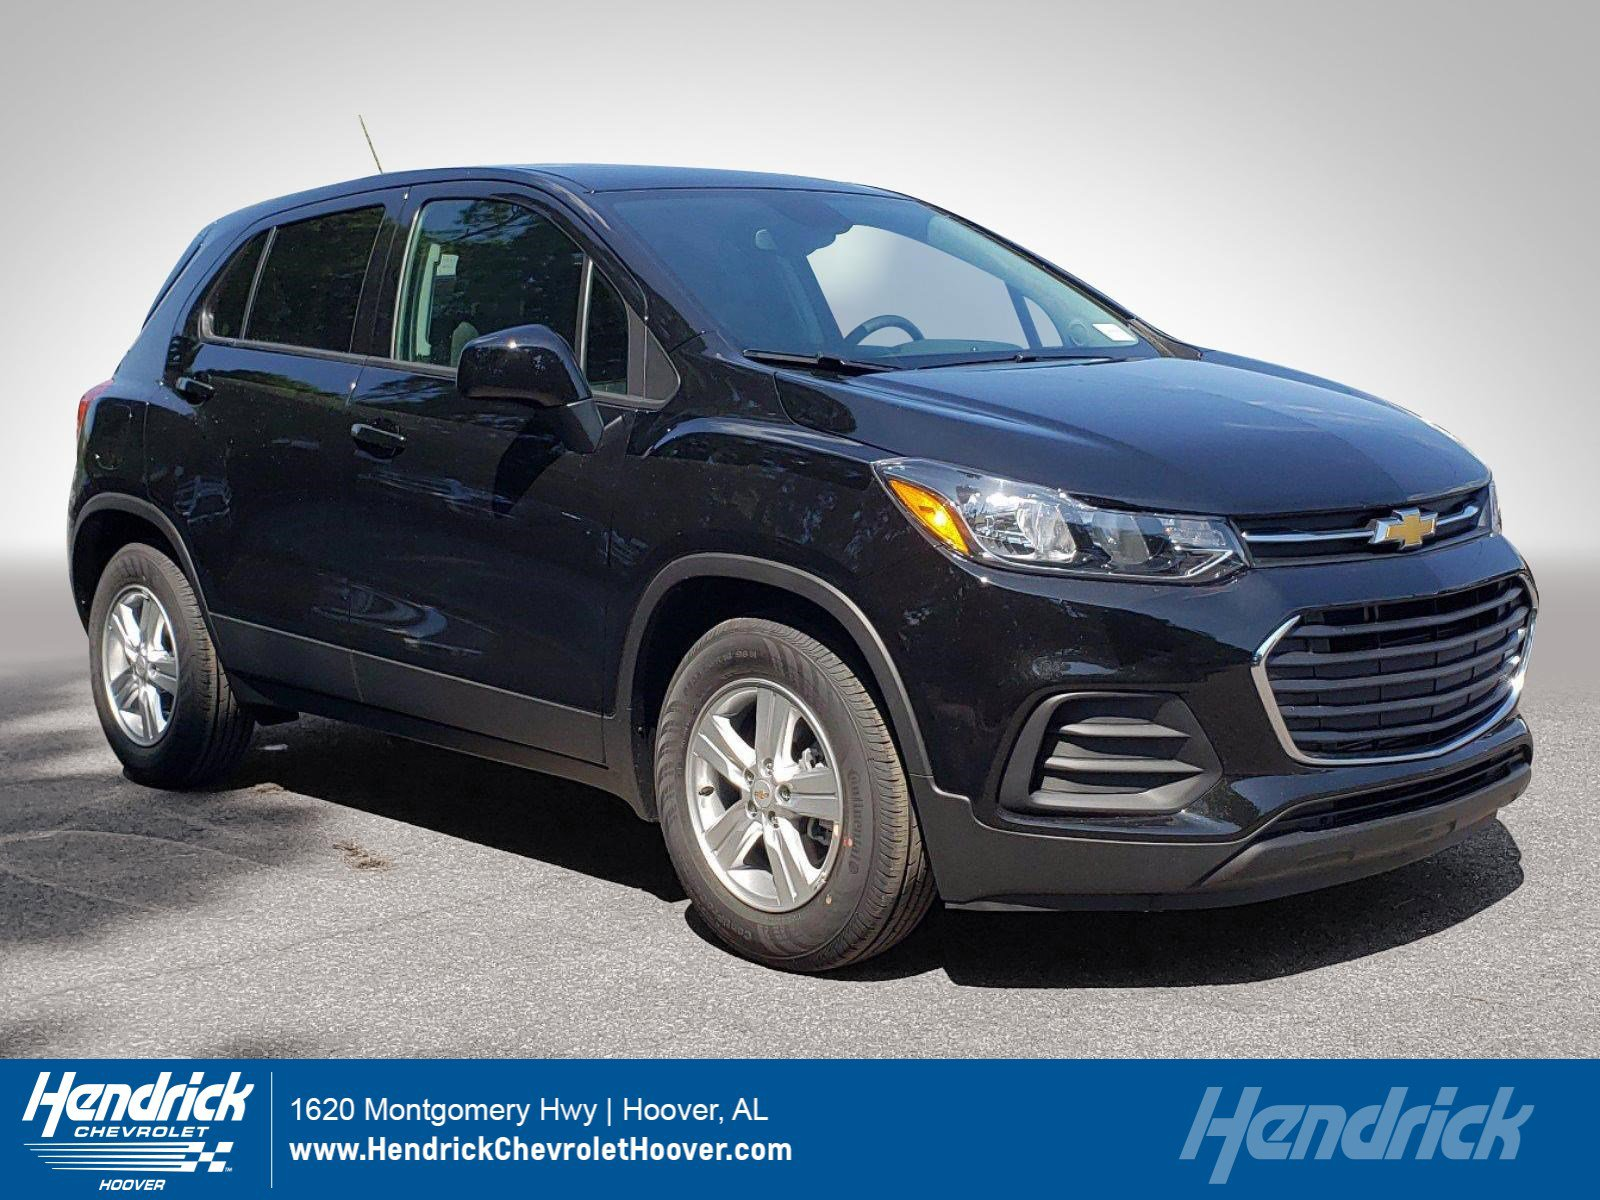 New Chevy Trax For Sale Hoover Chevy Suvs Hendrick Chevrolet Hoover